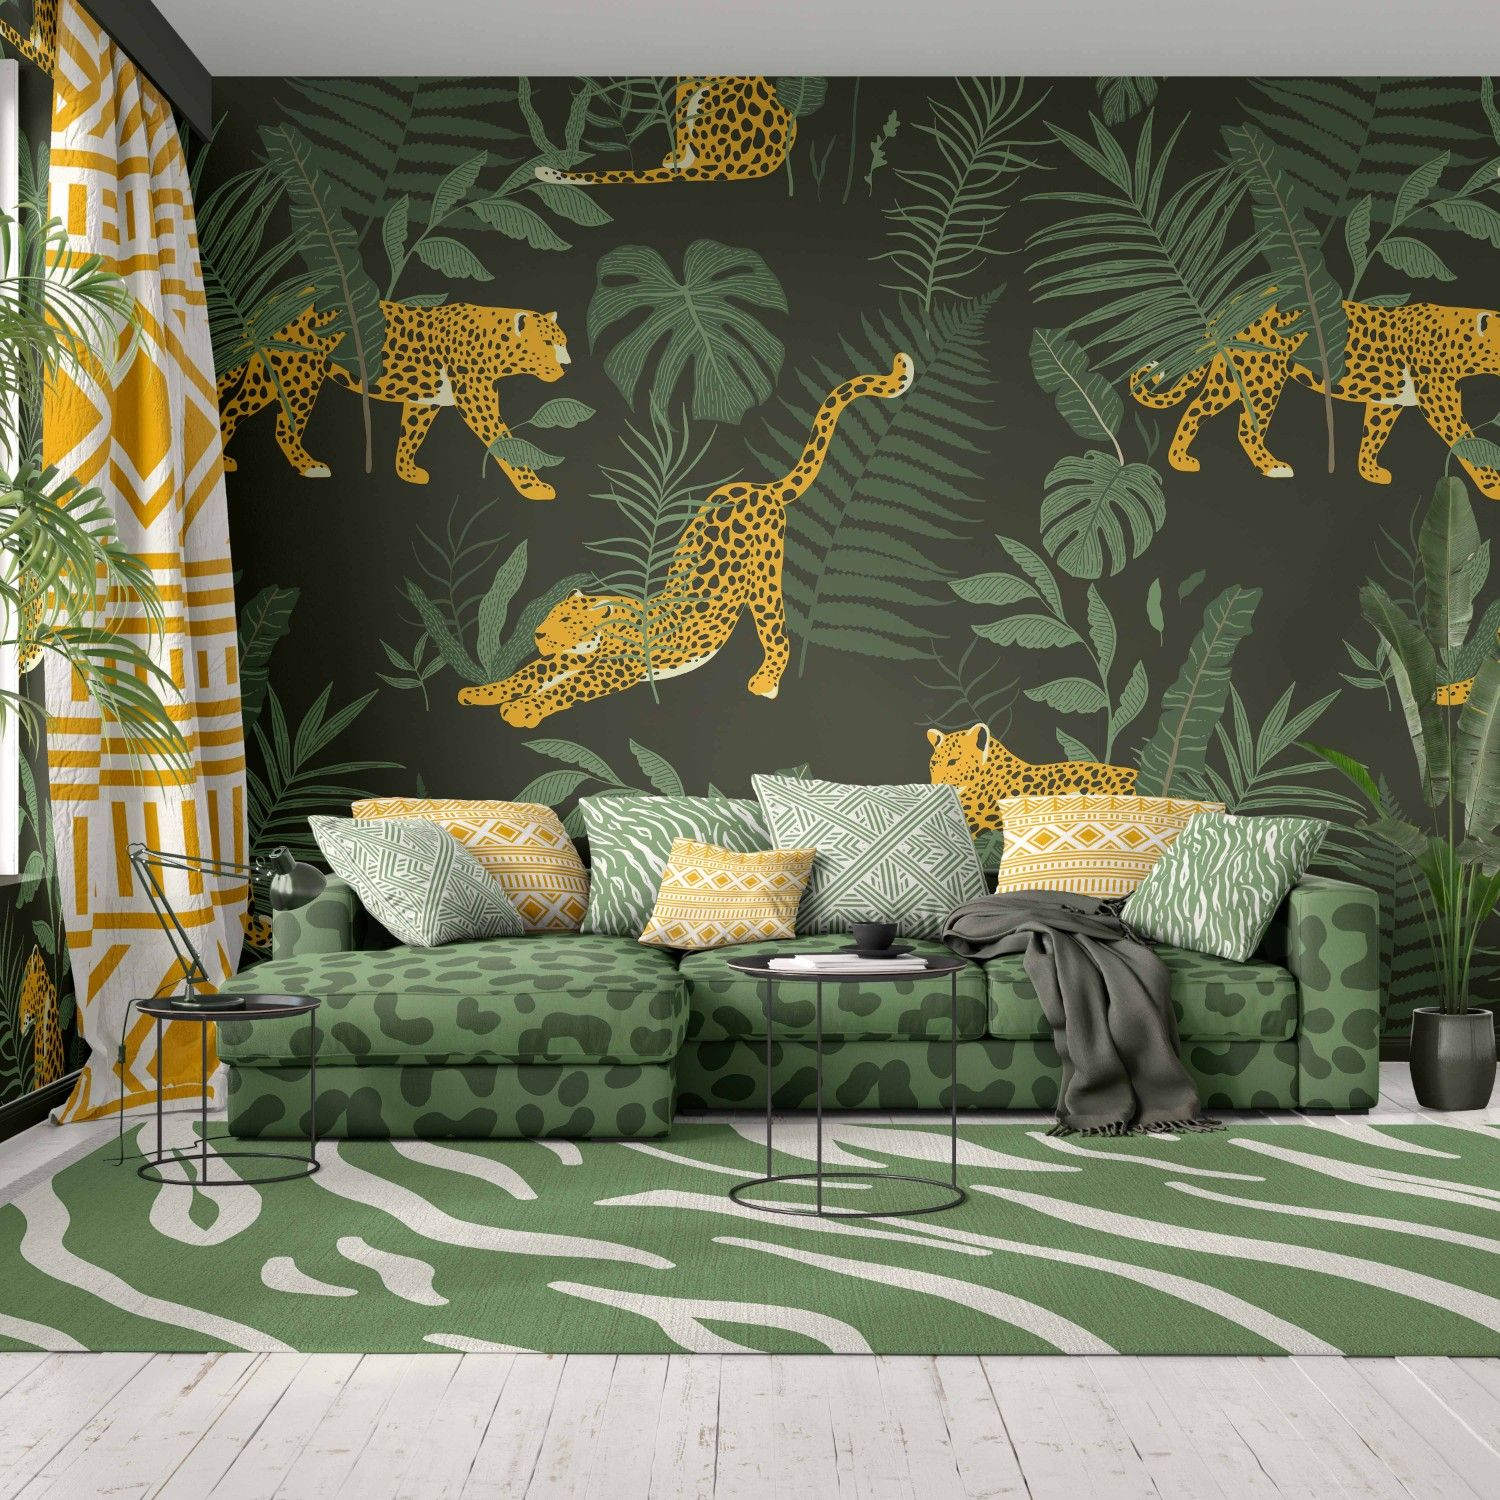 jungle playground concept wallpaper upholstery rug curtain